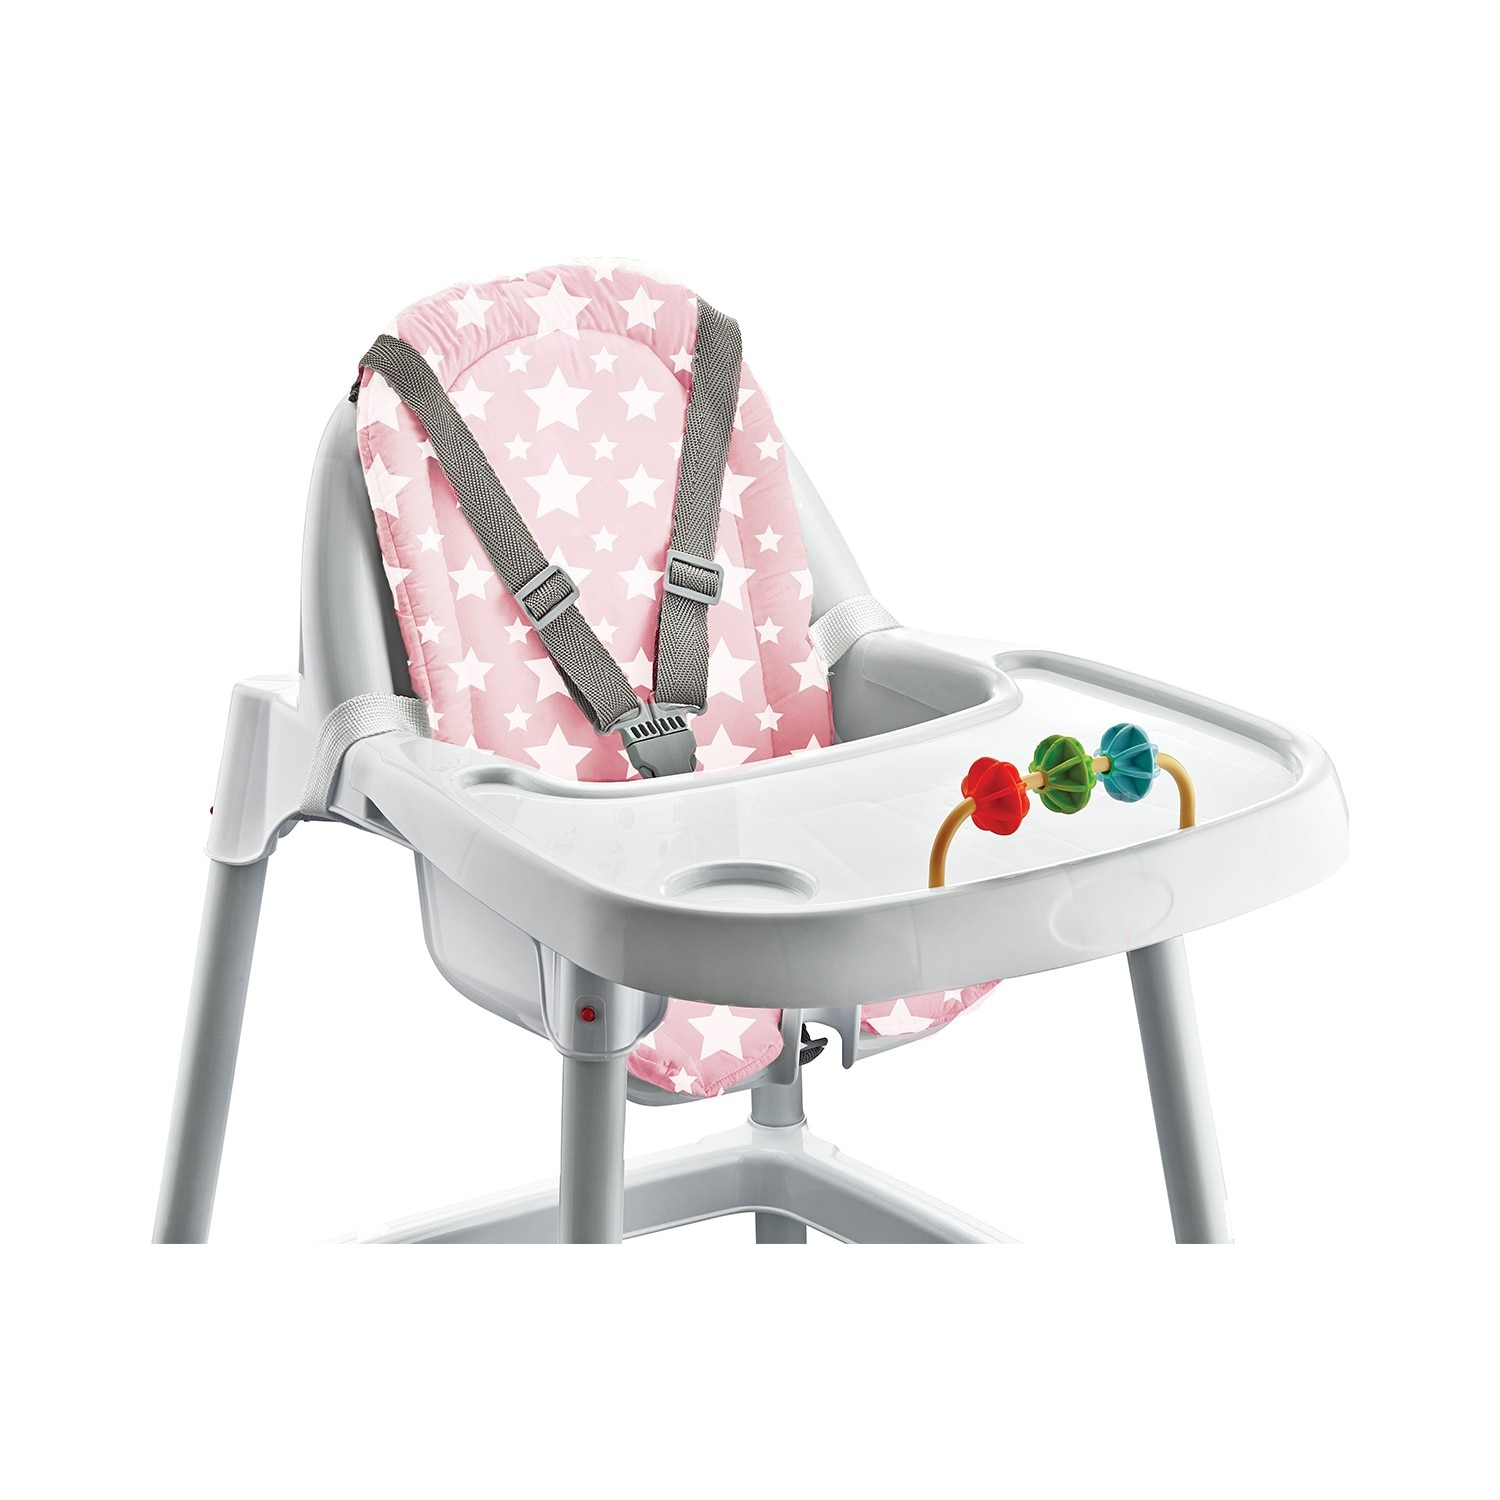 Babyjem 100% Cotton Highchairs Cushions, Soft Feeding Seat Pad, Pink Baby Seat Mat, Cushion for Chair Sofa, Easy to Wash,